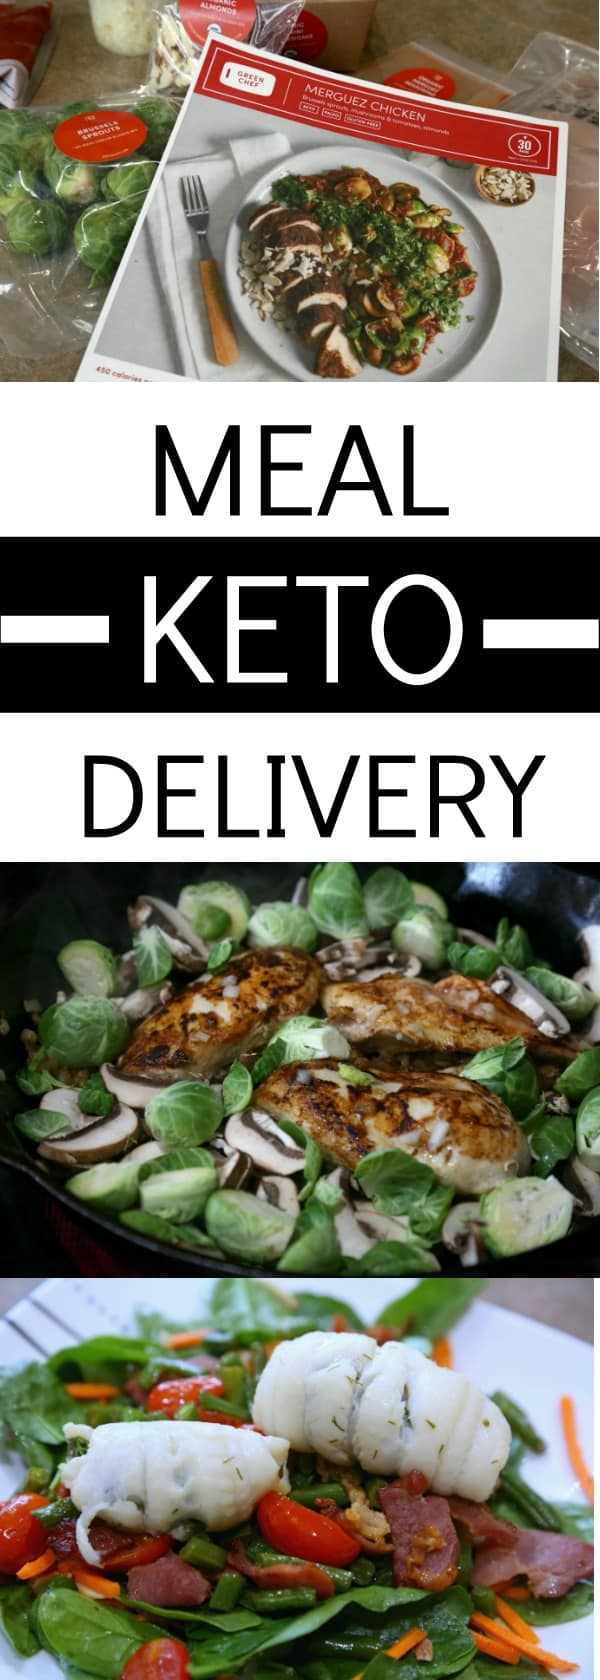 Keto Meal Delivery Review